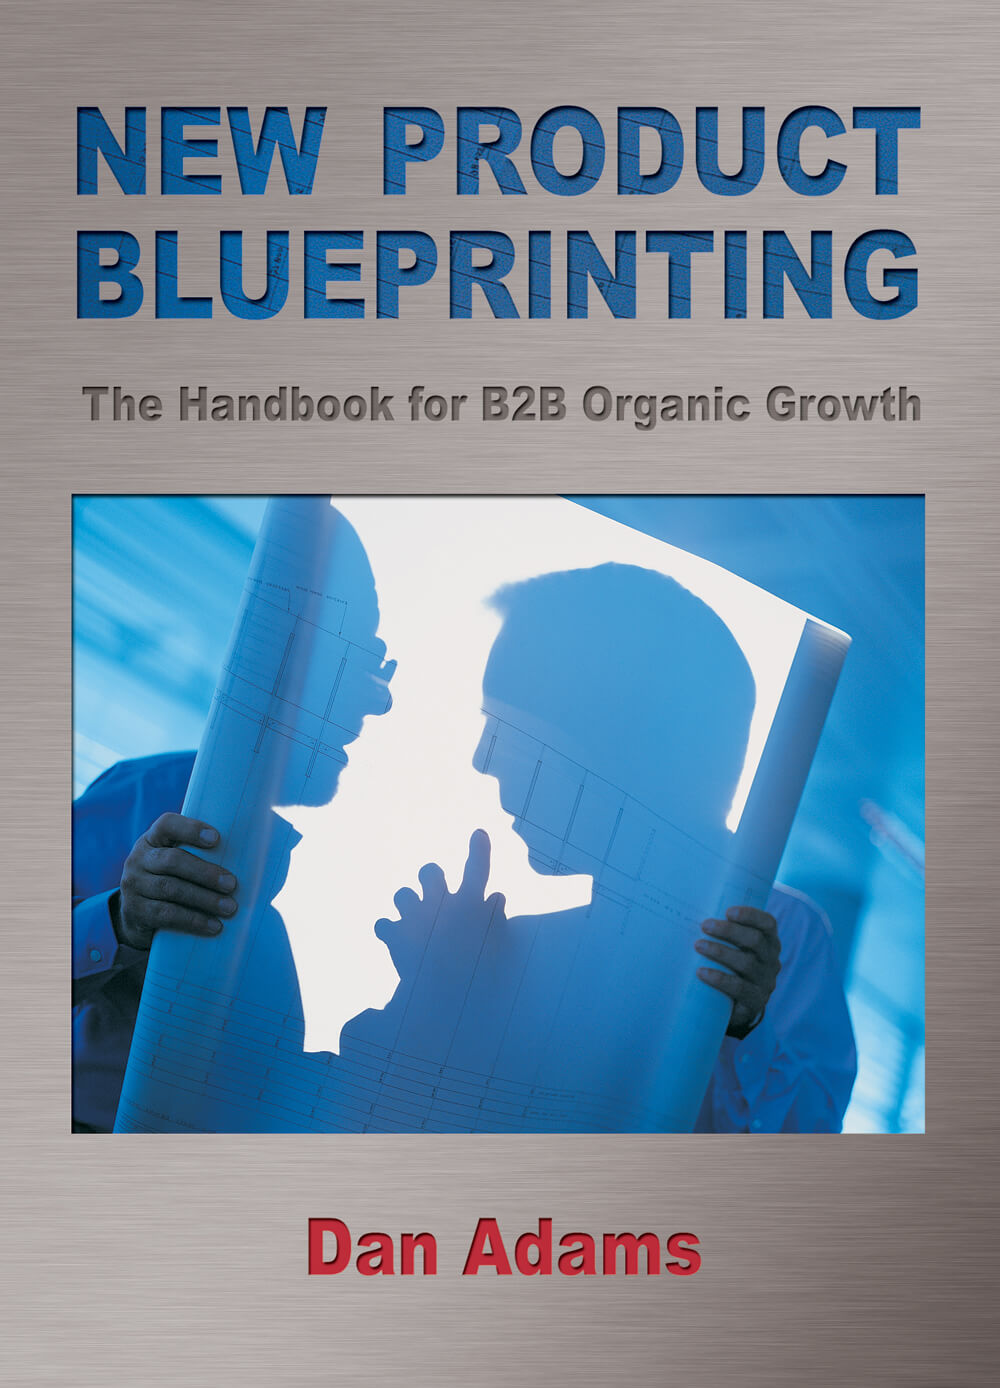 New Product Blueprinting Book Cover Flat Graphic